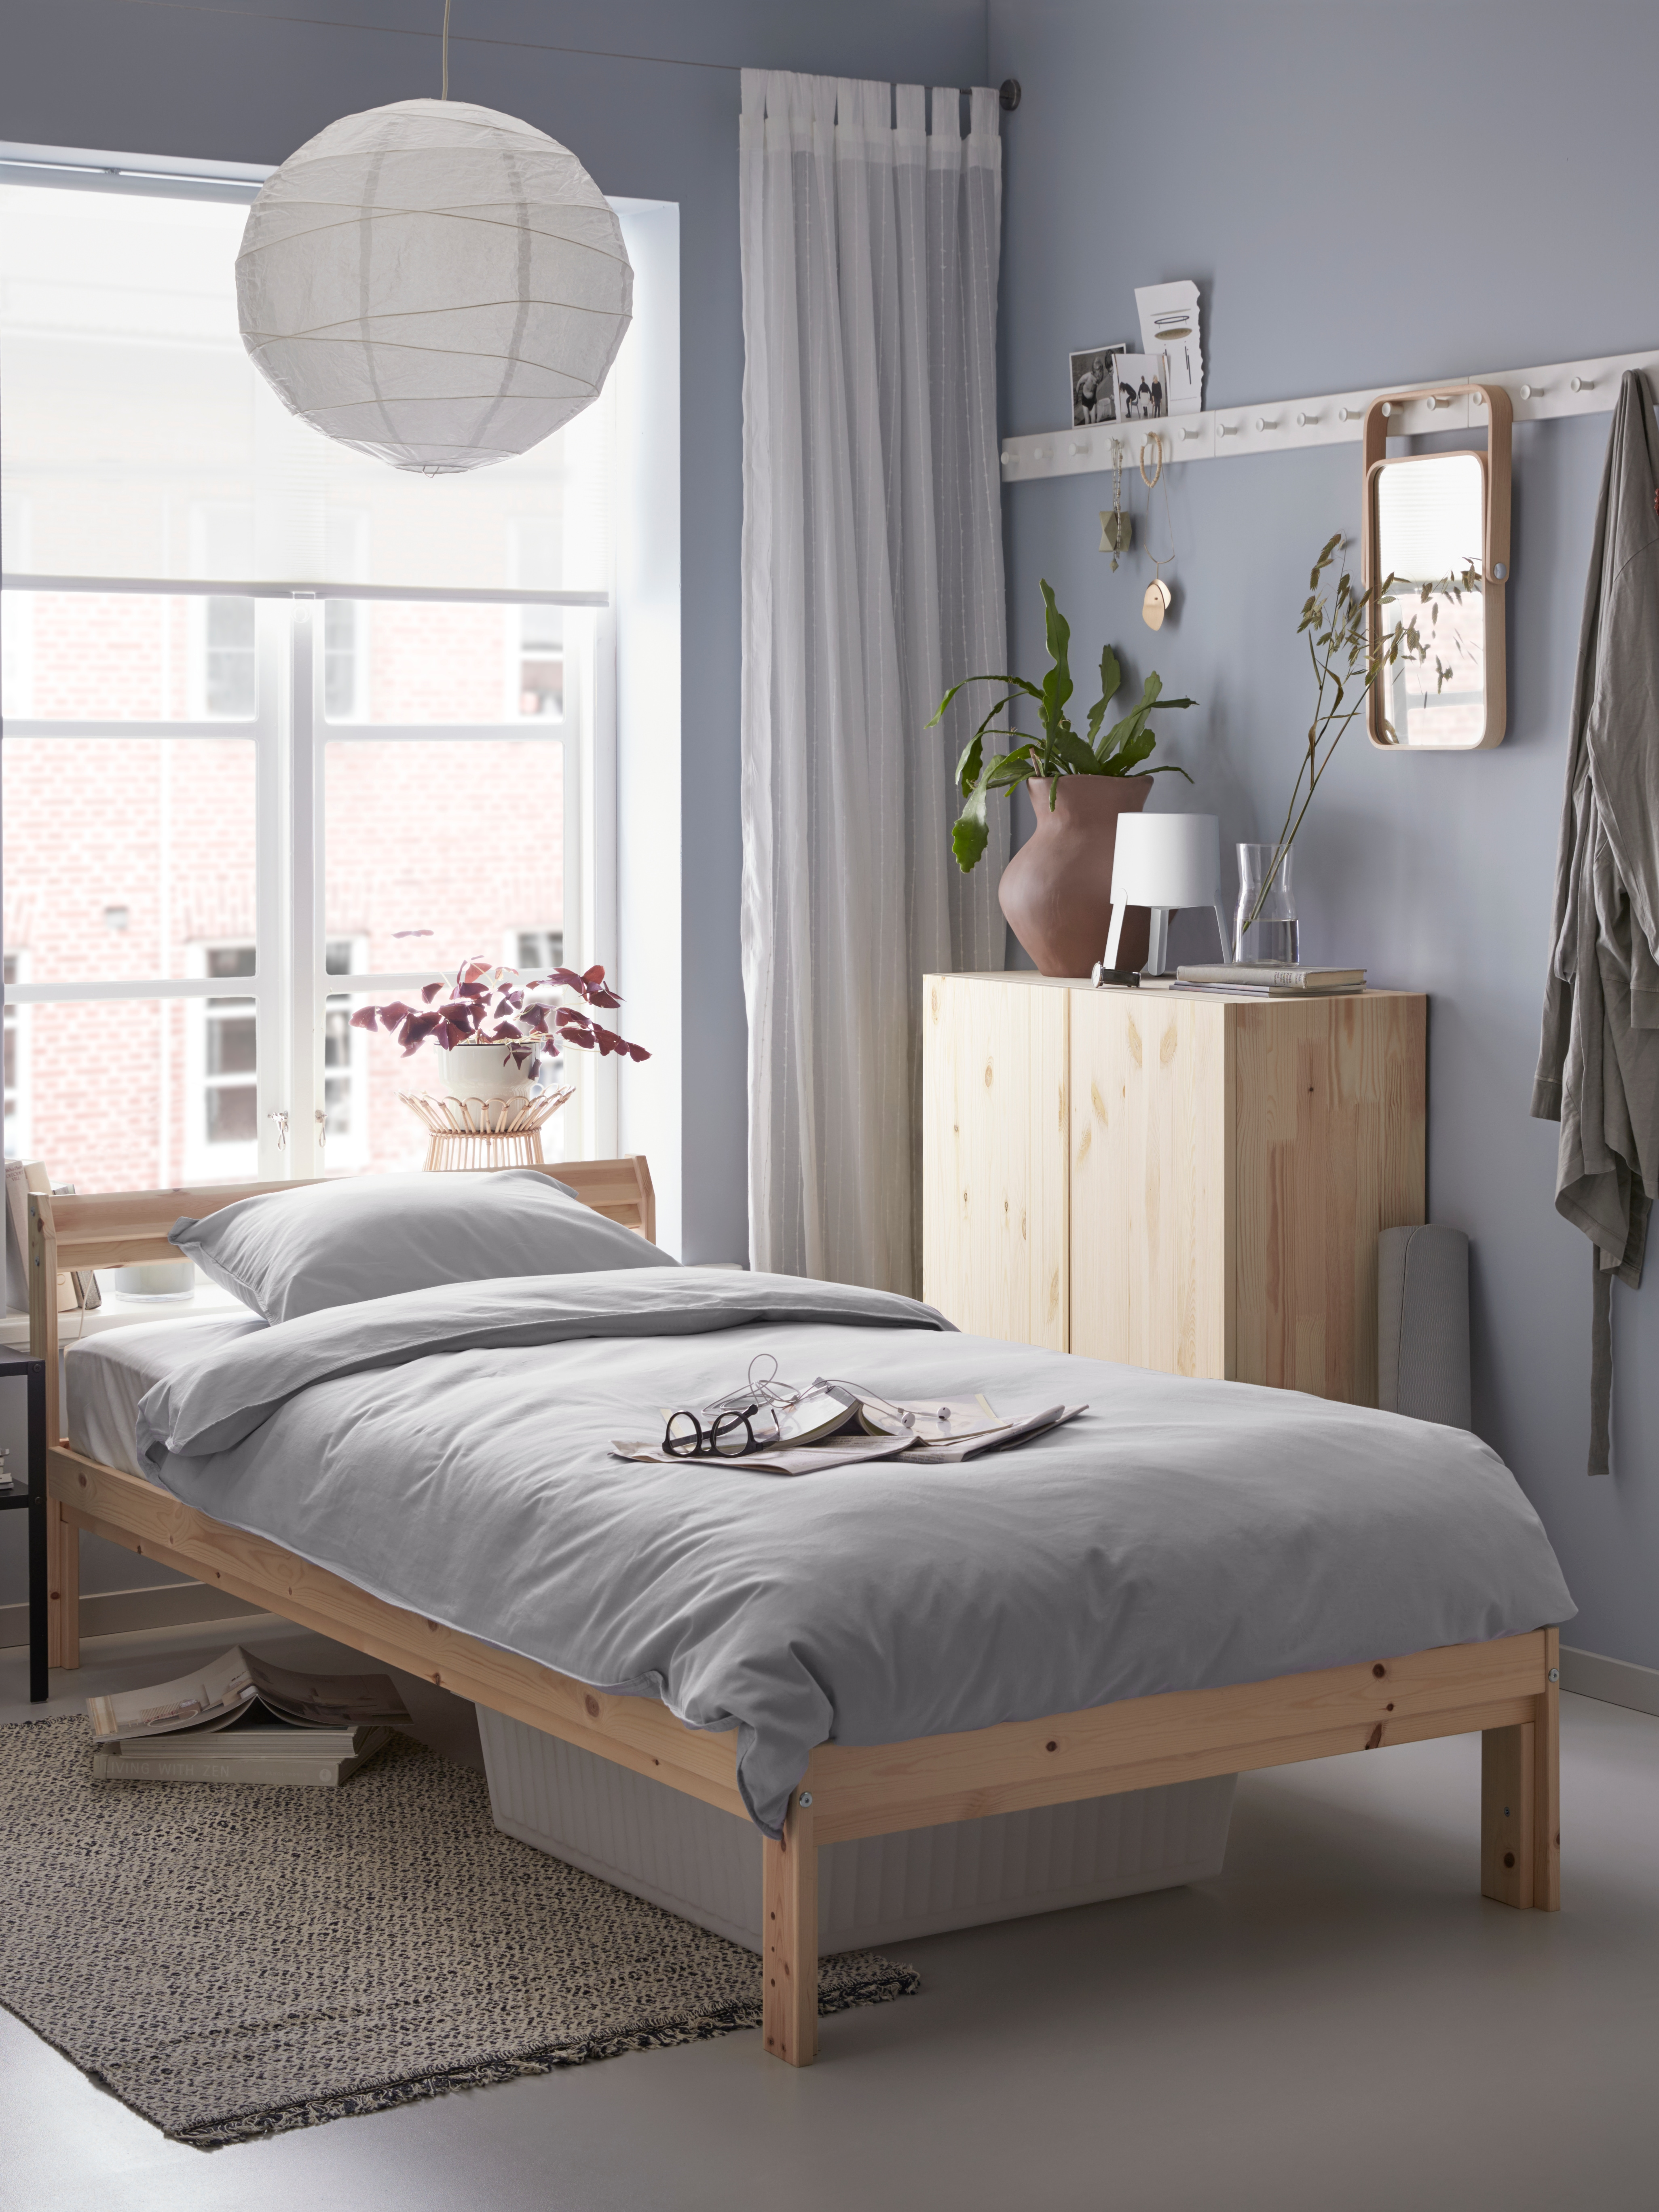 NEIDEN pine bed frame, with grey quilt cover and pillowcases, by a window in a grey-scaled bedroom next to a pine cabinet.